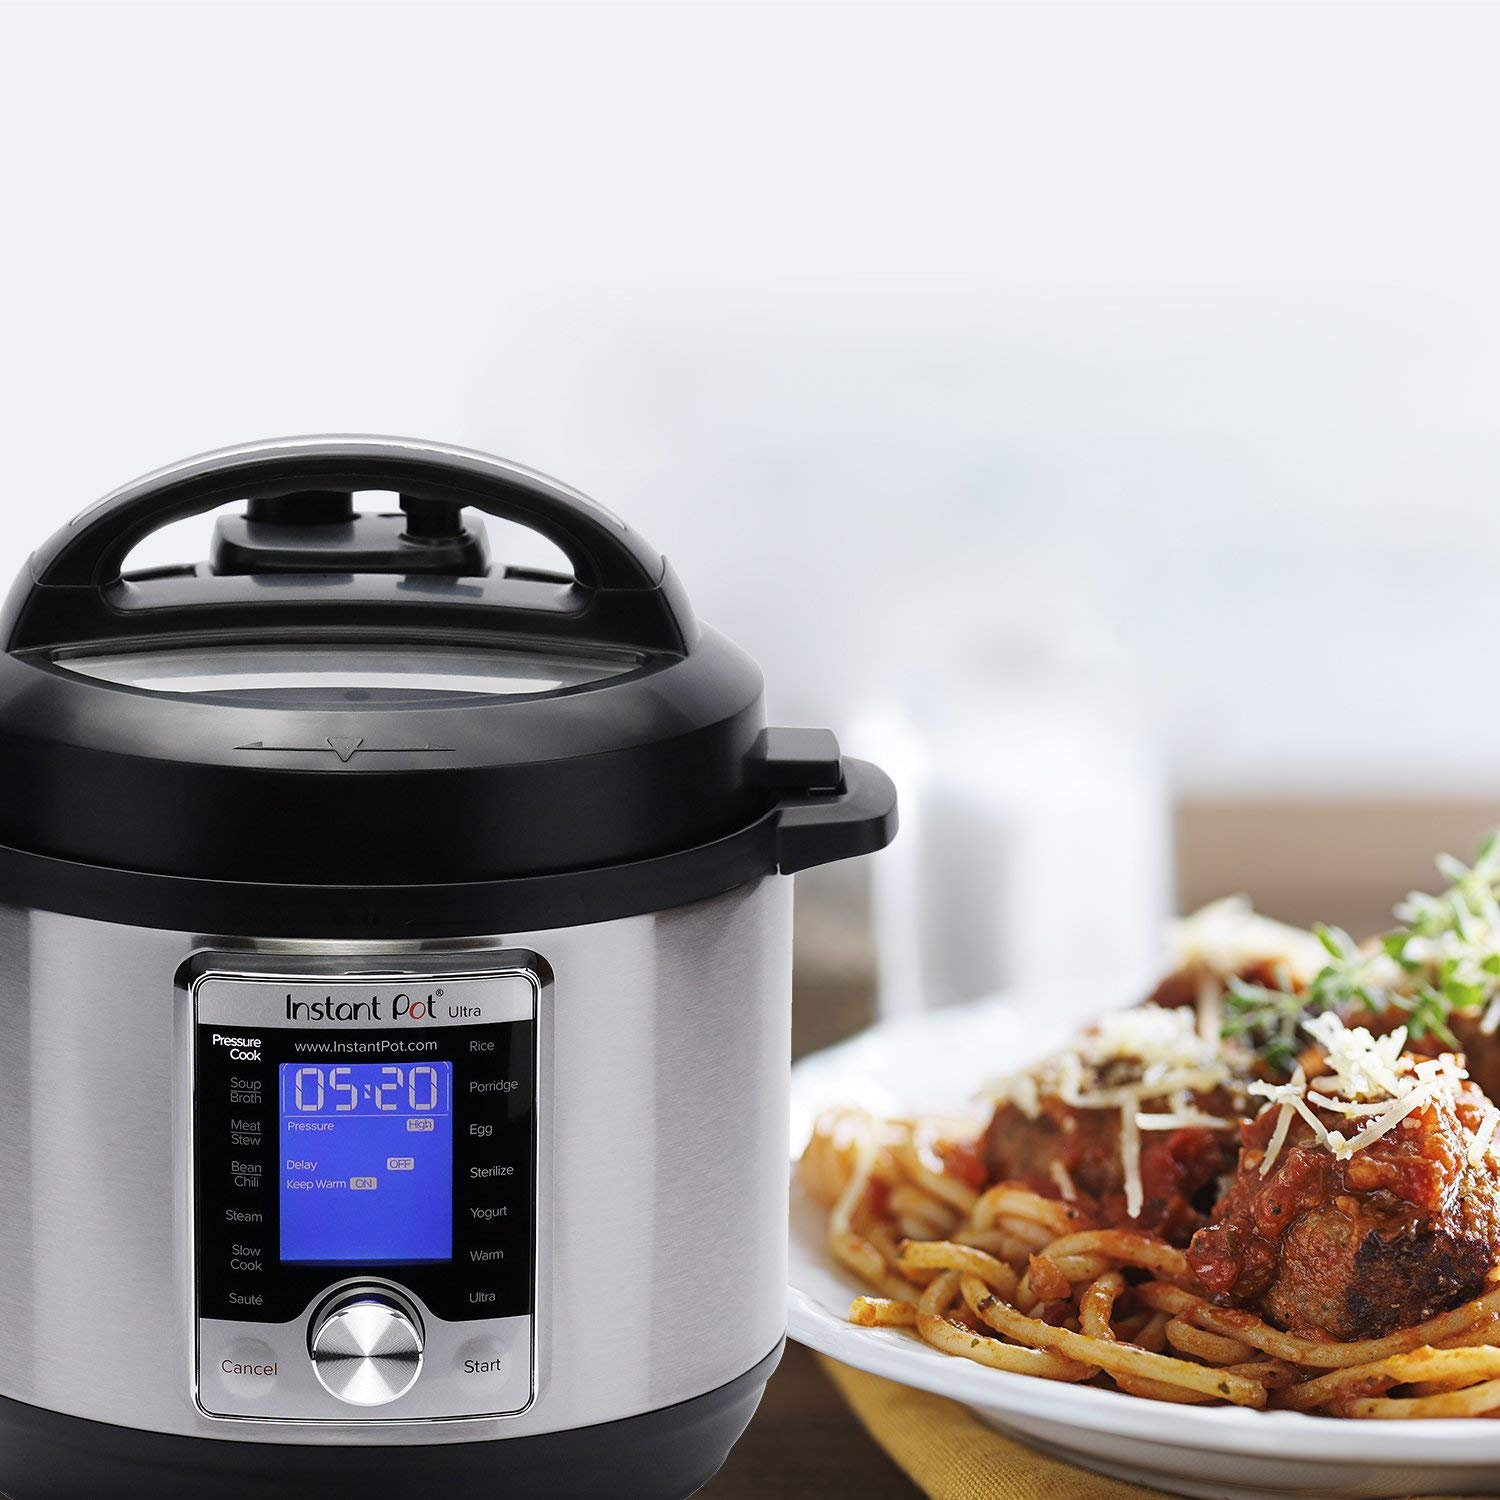 Power Pressure Cooker - best electric cooker